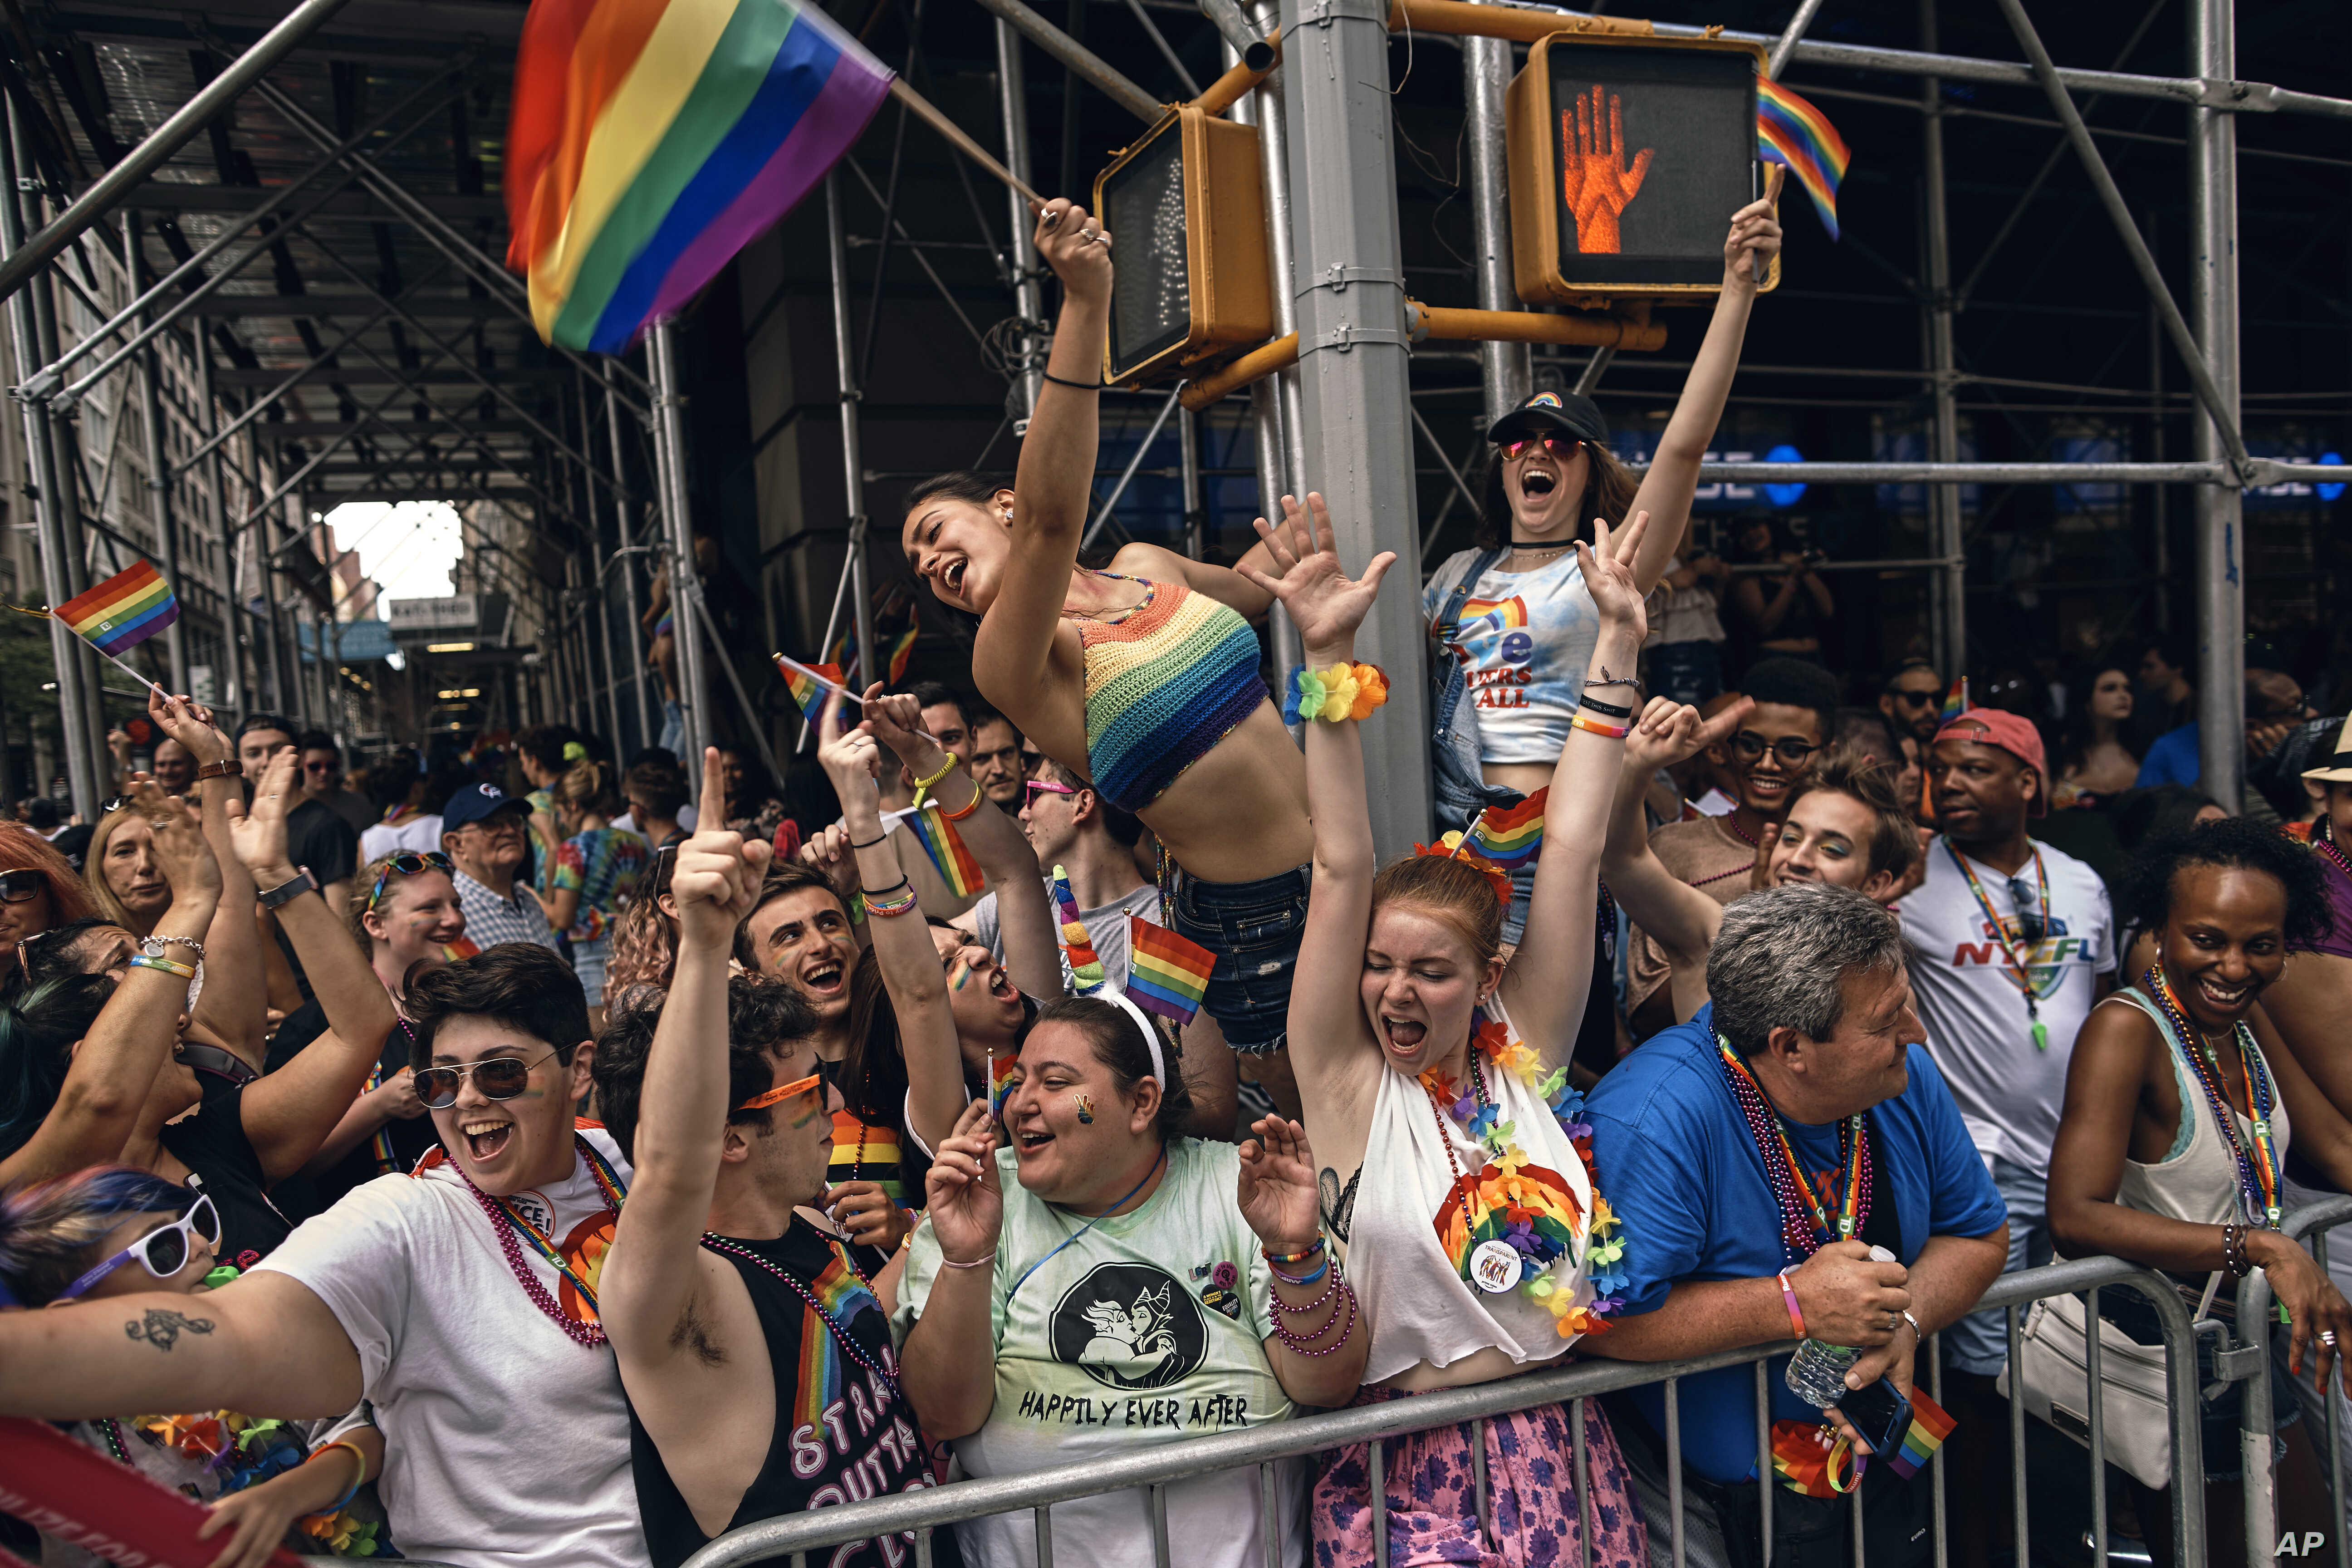 Us Gay Pride Parades Sound Note Of Resistance And Face Some